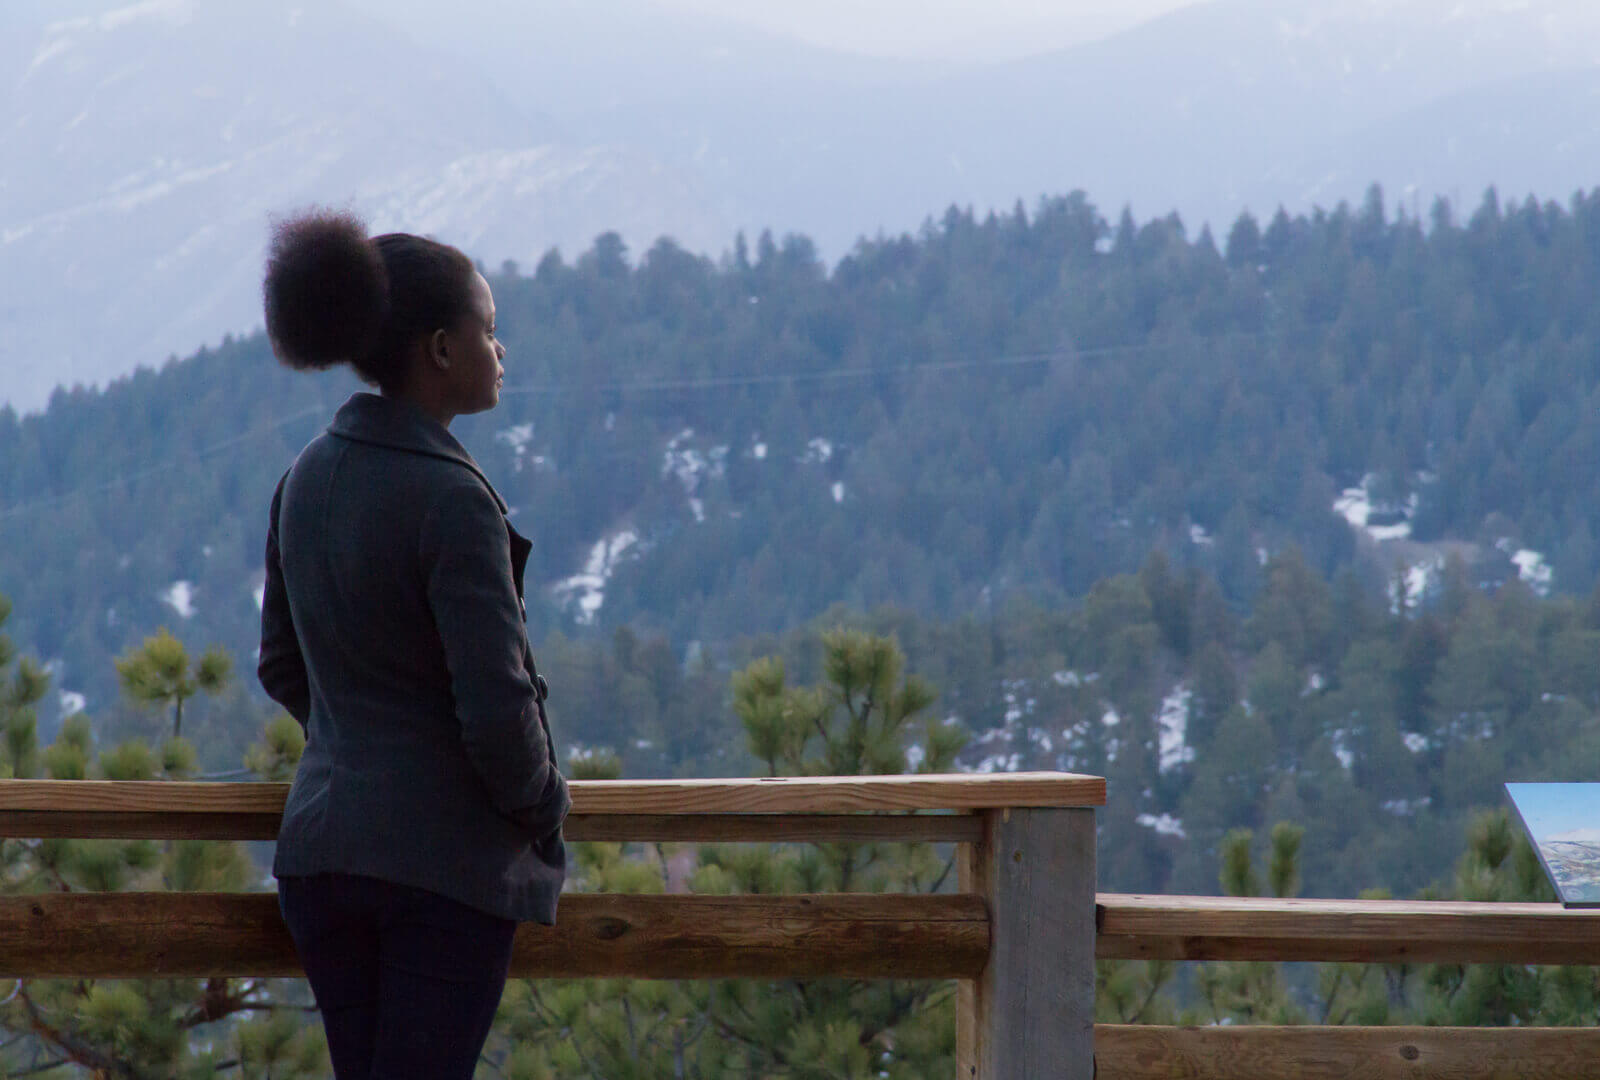 Grace looking out over the Mountains